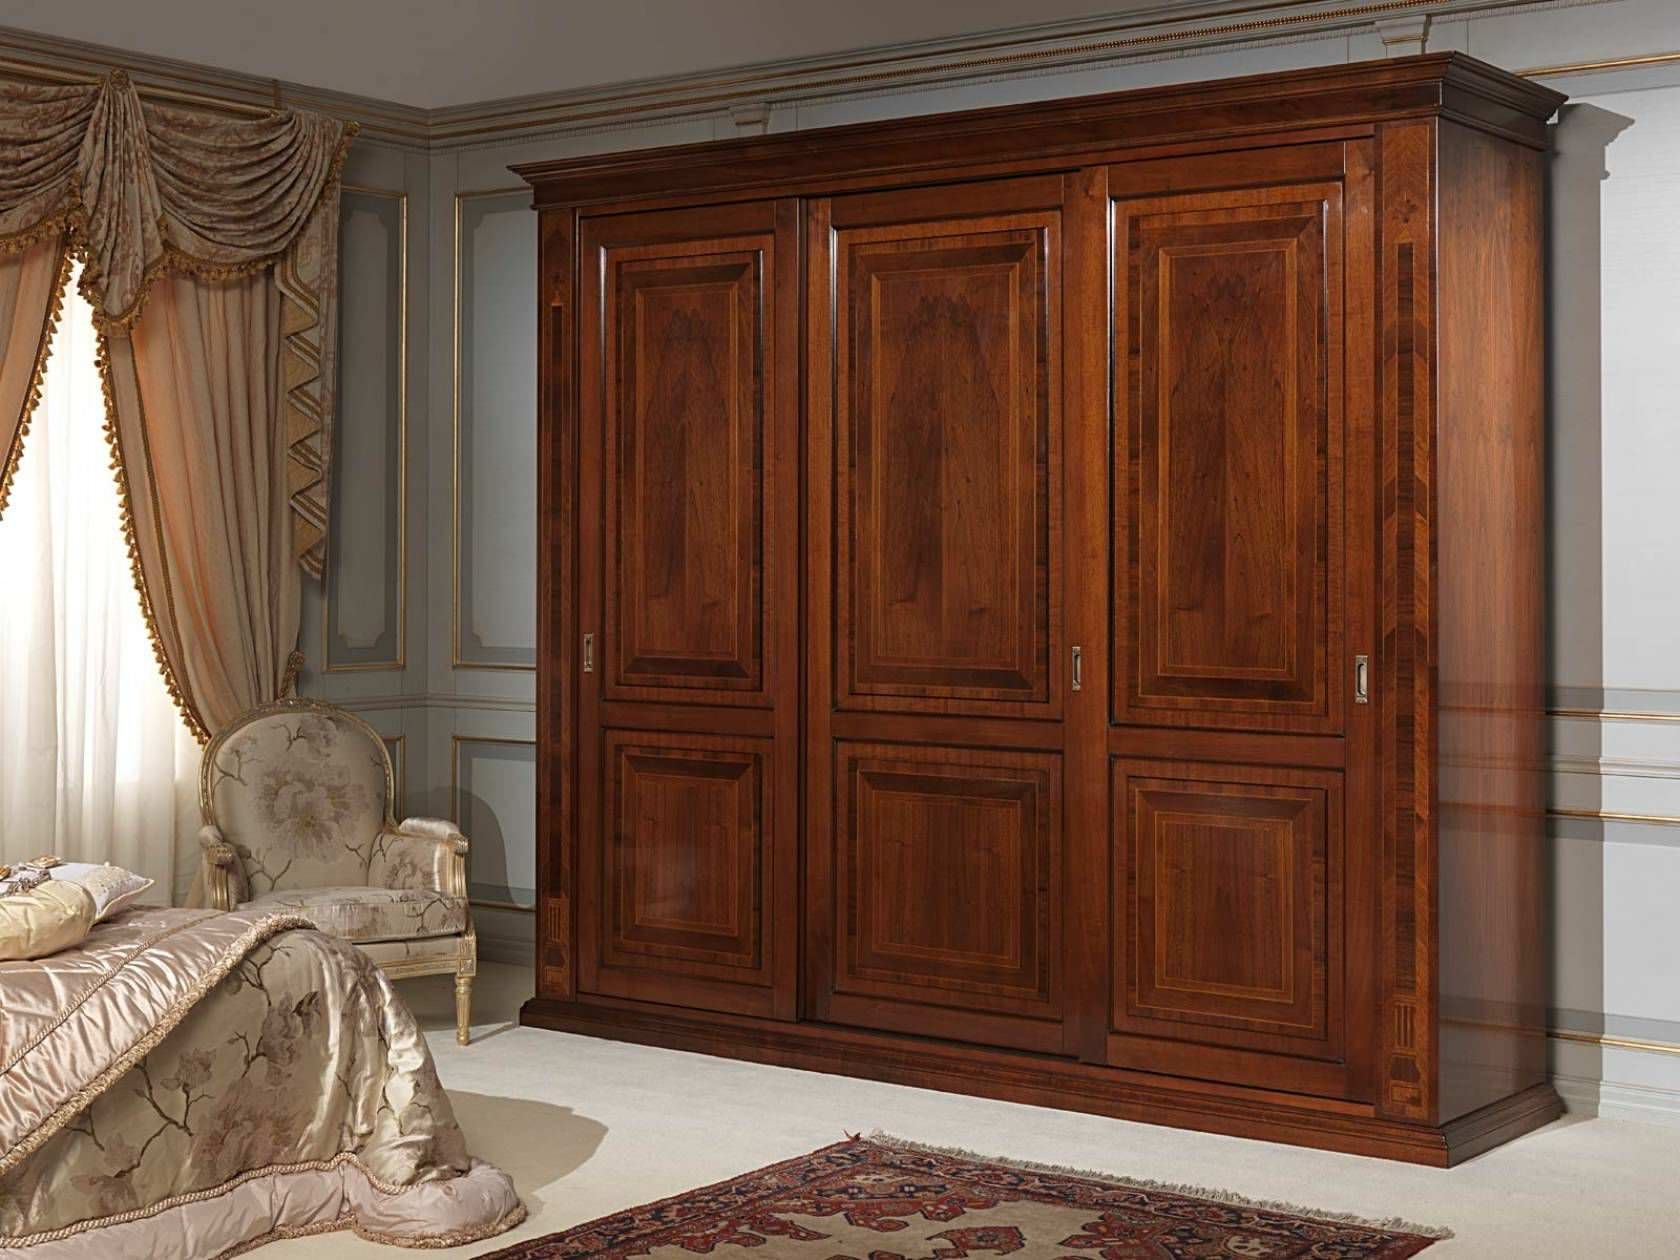 Wooden Wardrobes Throughout Well Known Classic Wardrobe / Wooden / Sliding Door – French 19Th Century (View 8 of 15)